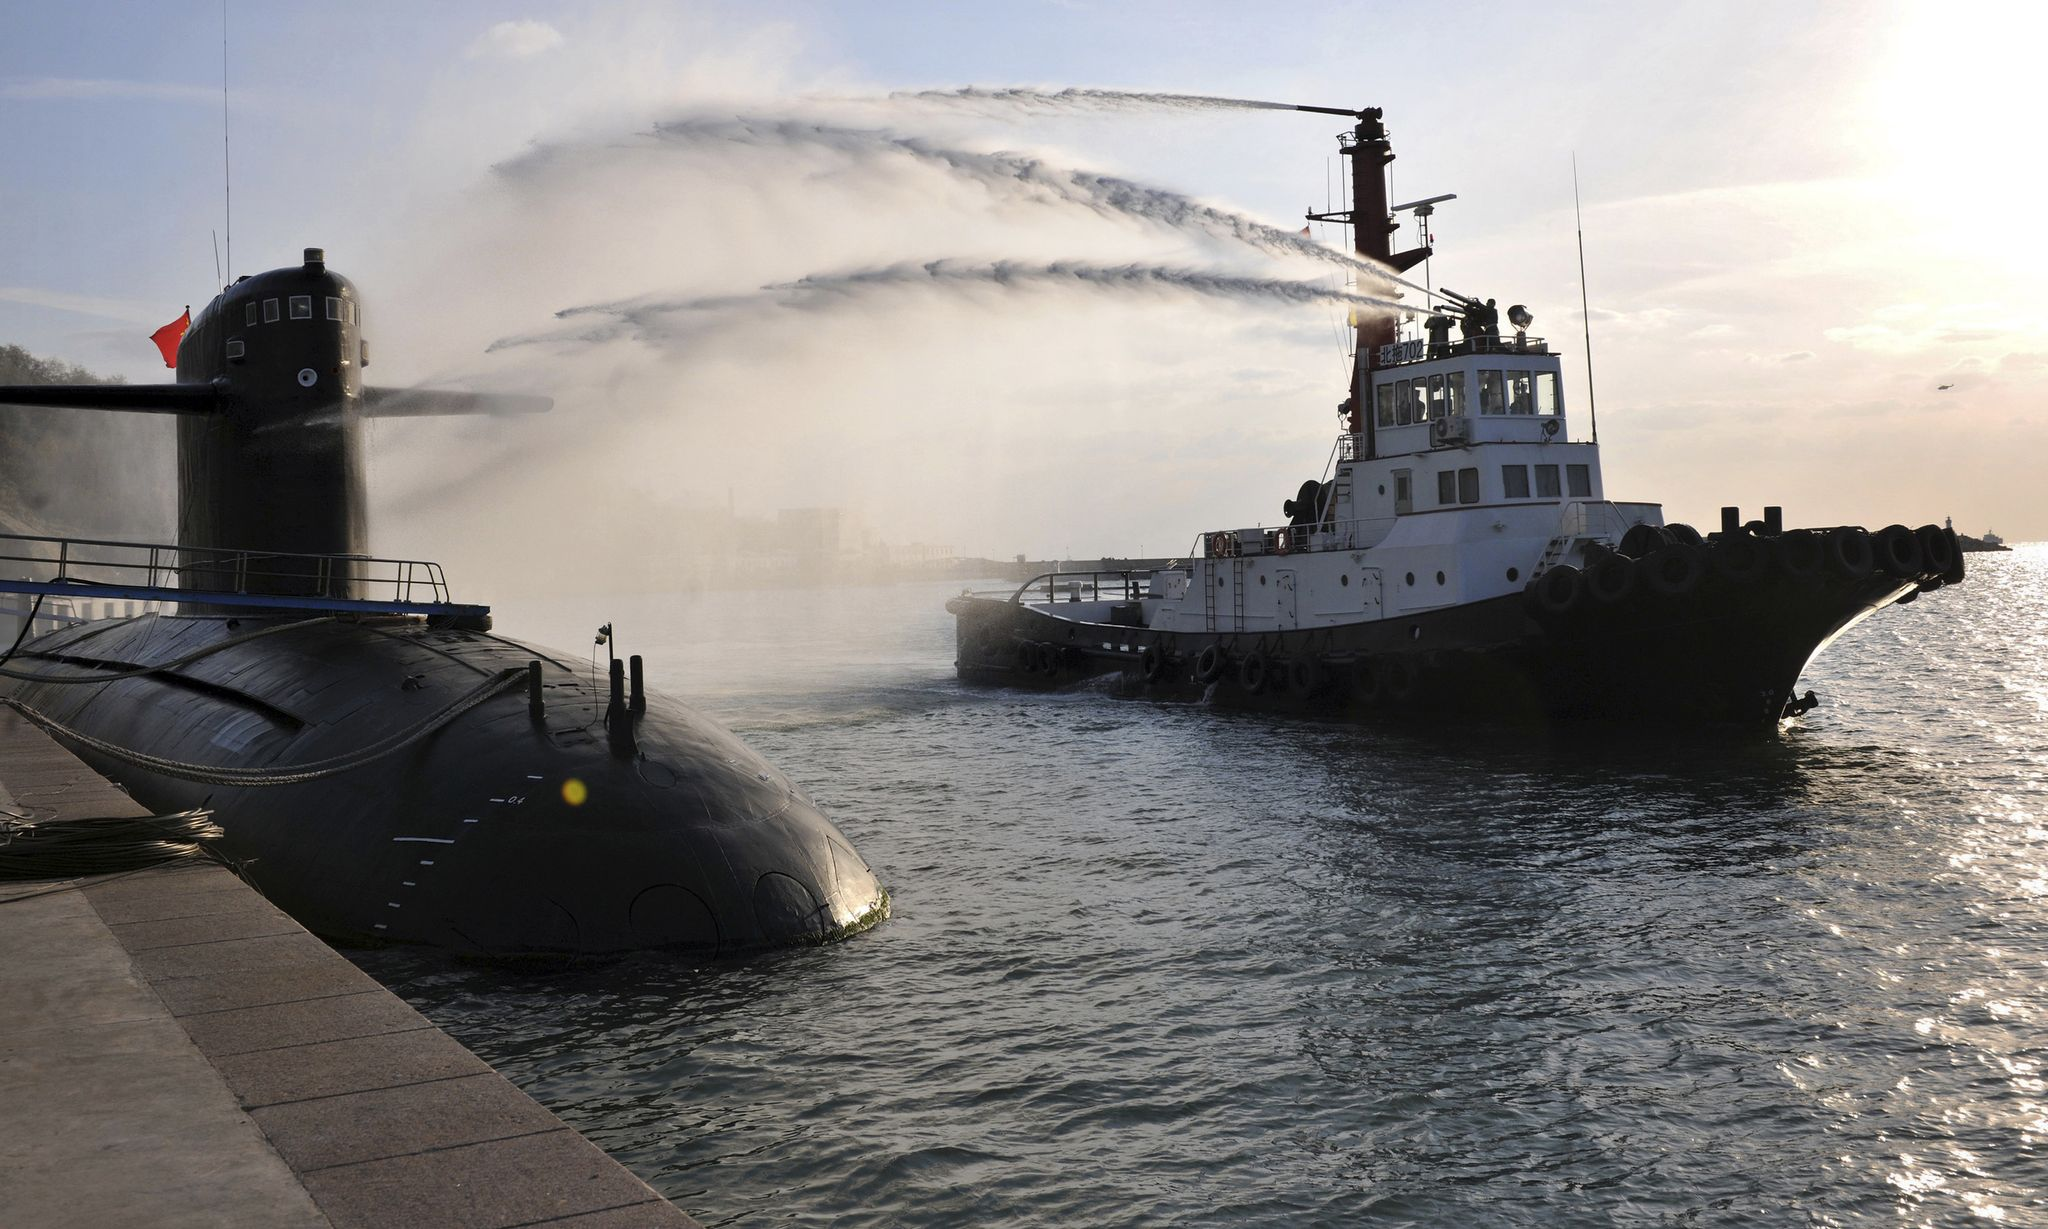 Inside China: Nuclear submarines capable of widespread attack on U.S.